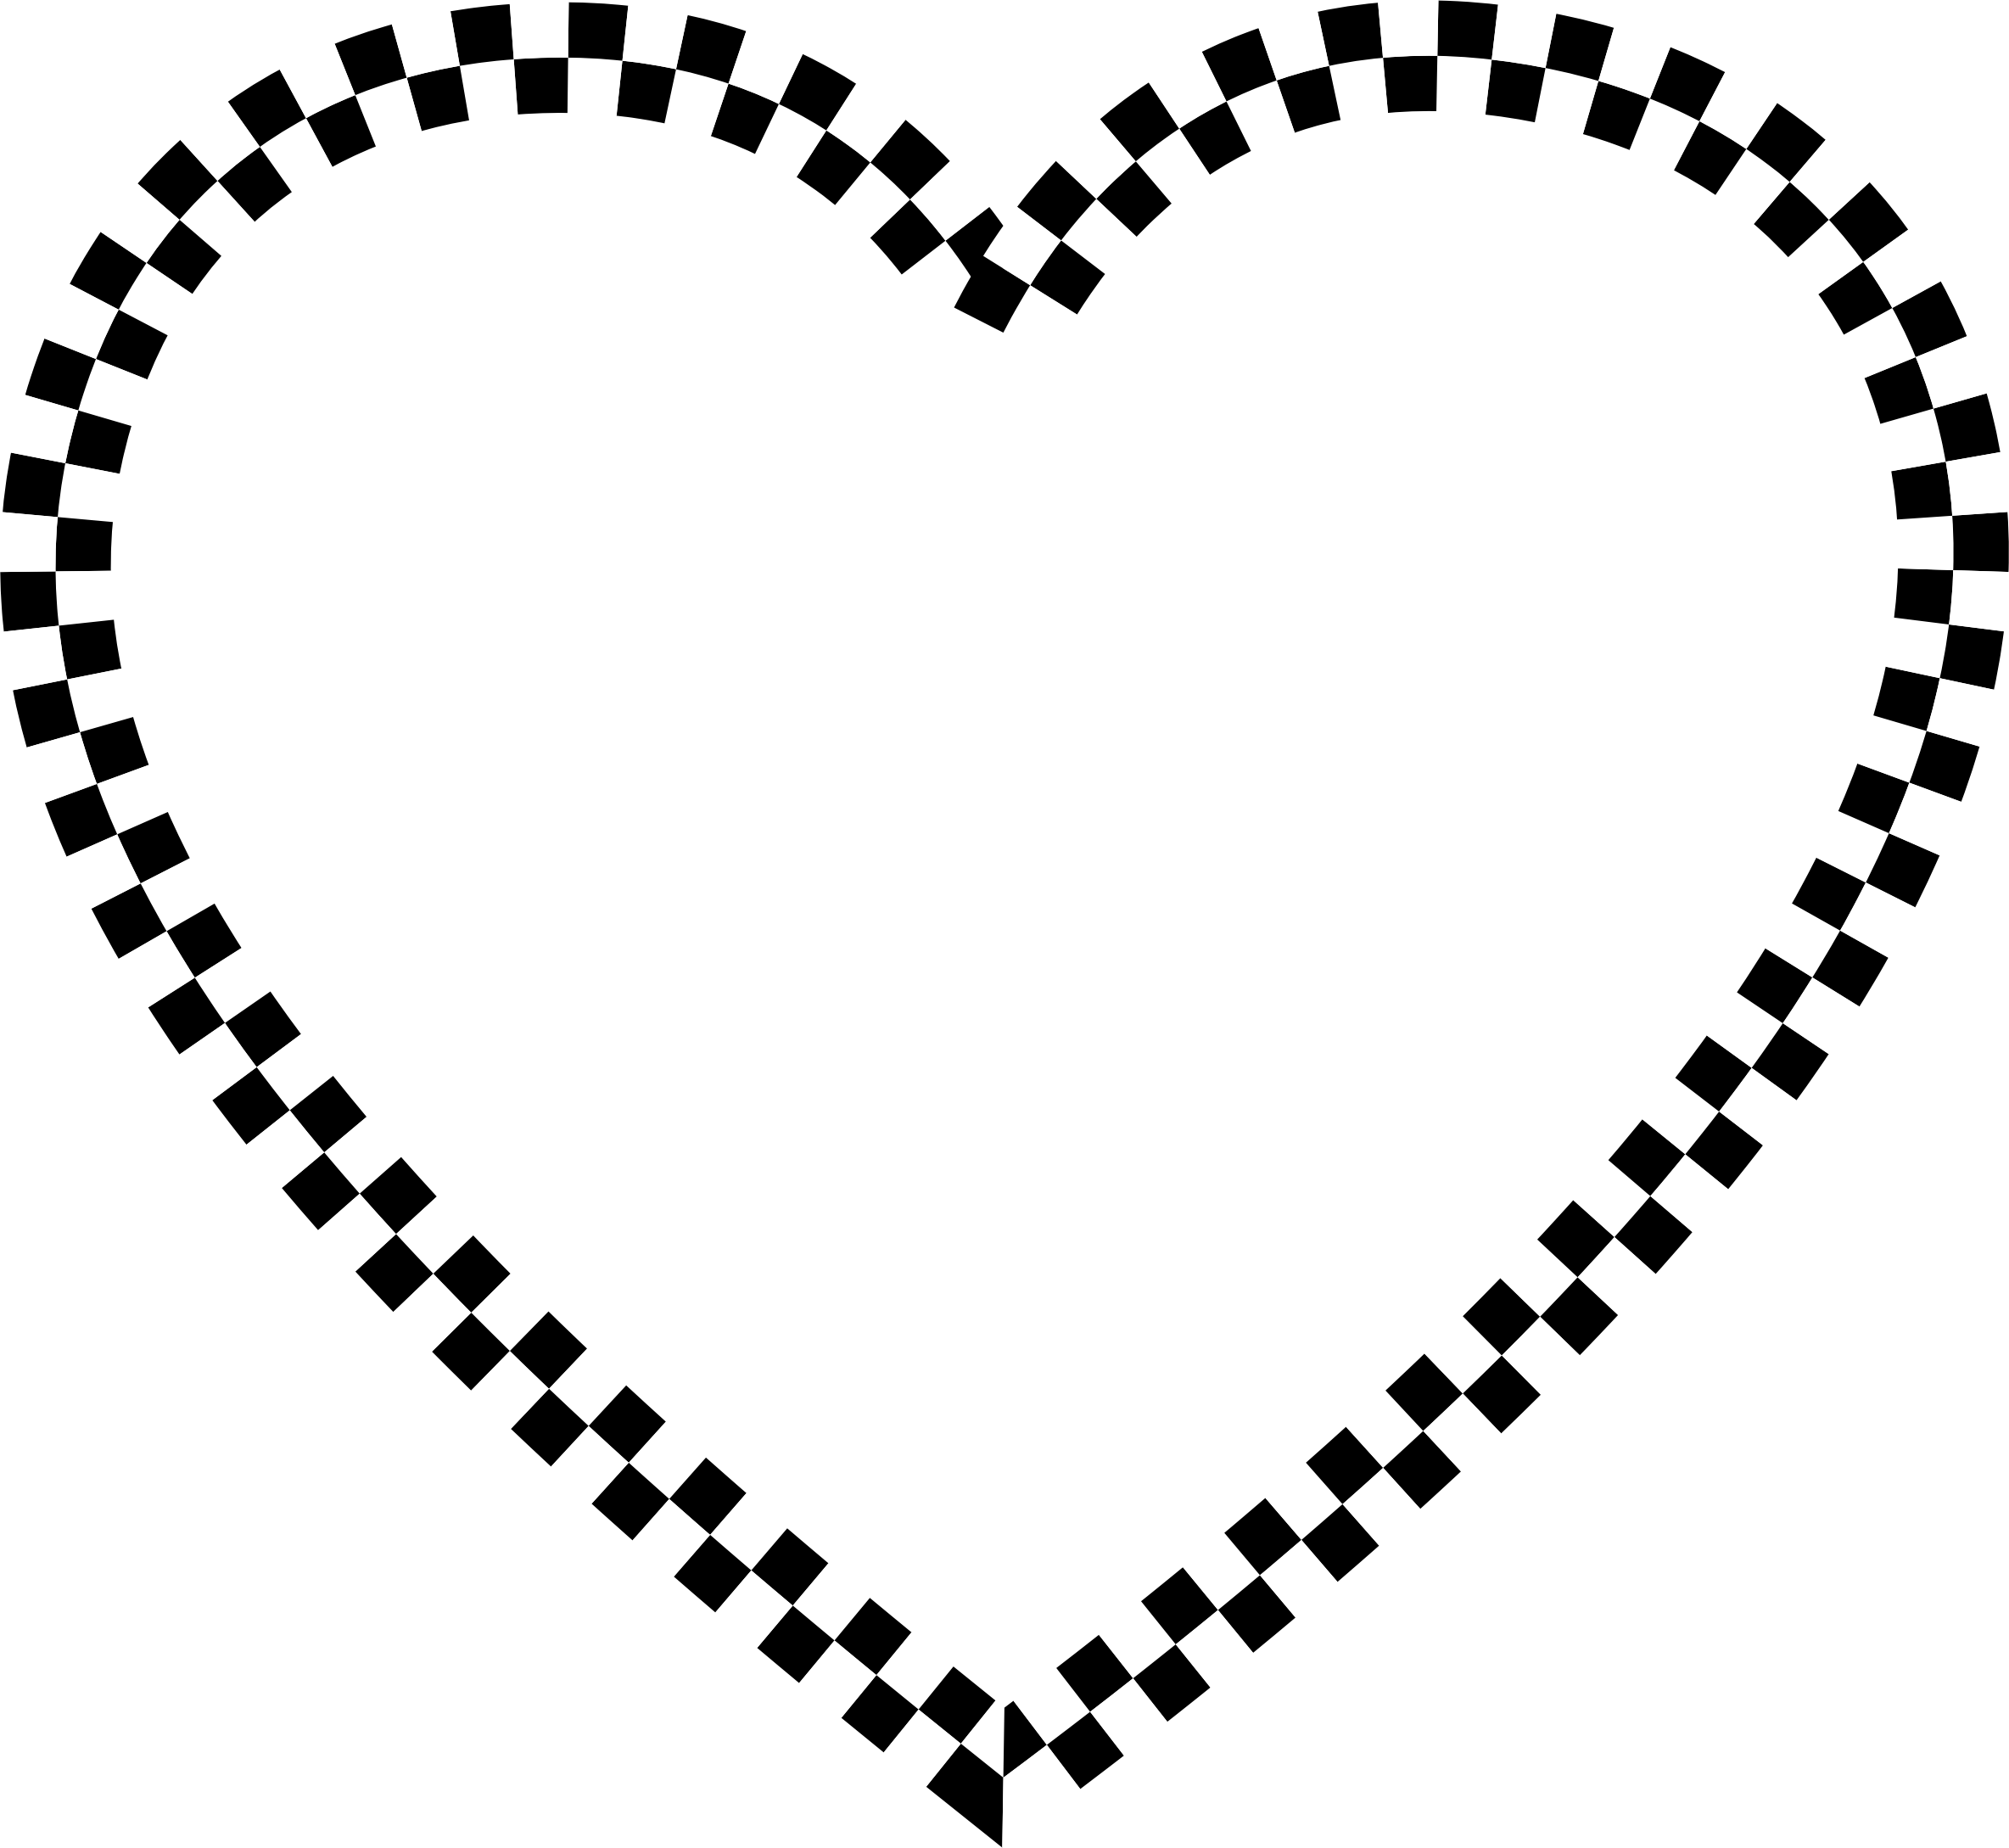 Checkered Heart by GDJ